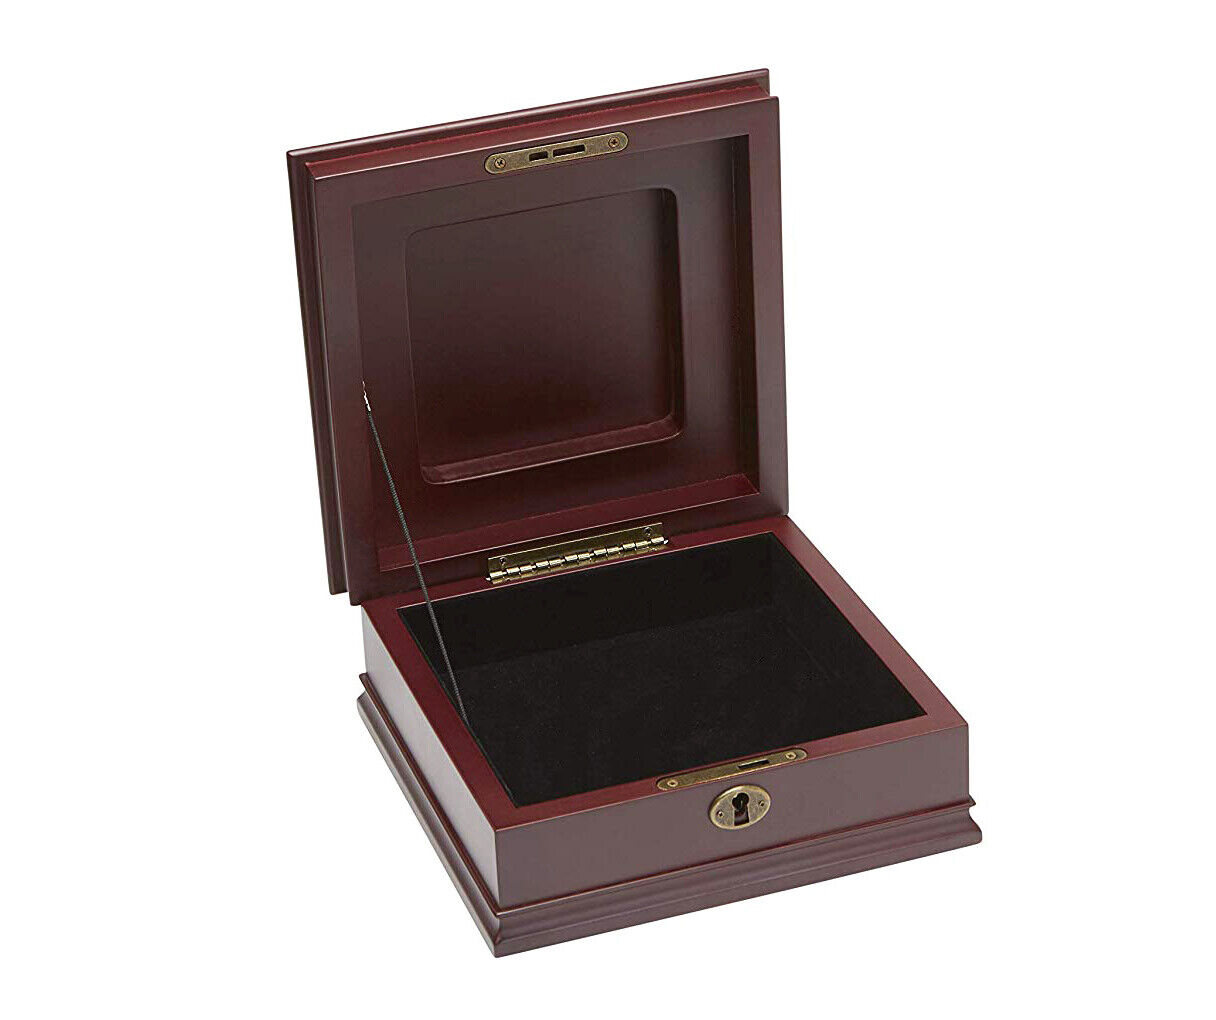 Allied Frame U S Air Force Medallion Executive Desktop Box 100 Made In U S A For Sale Online